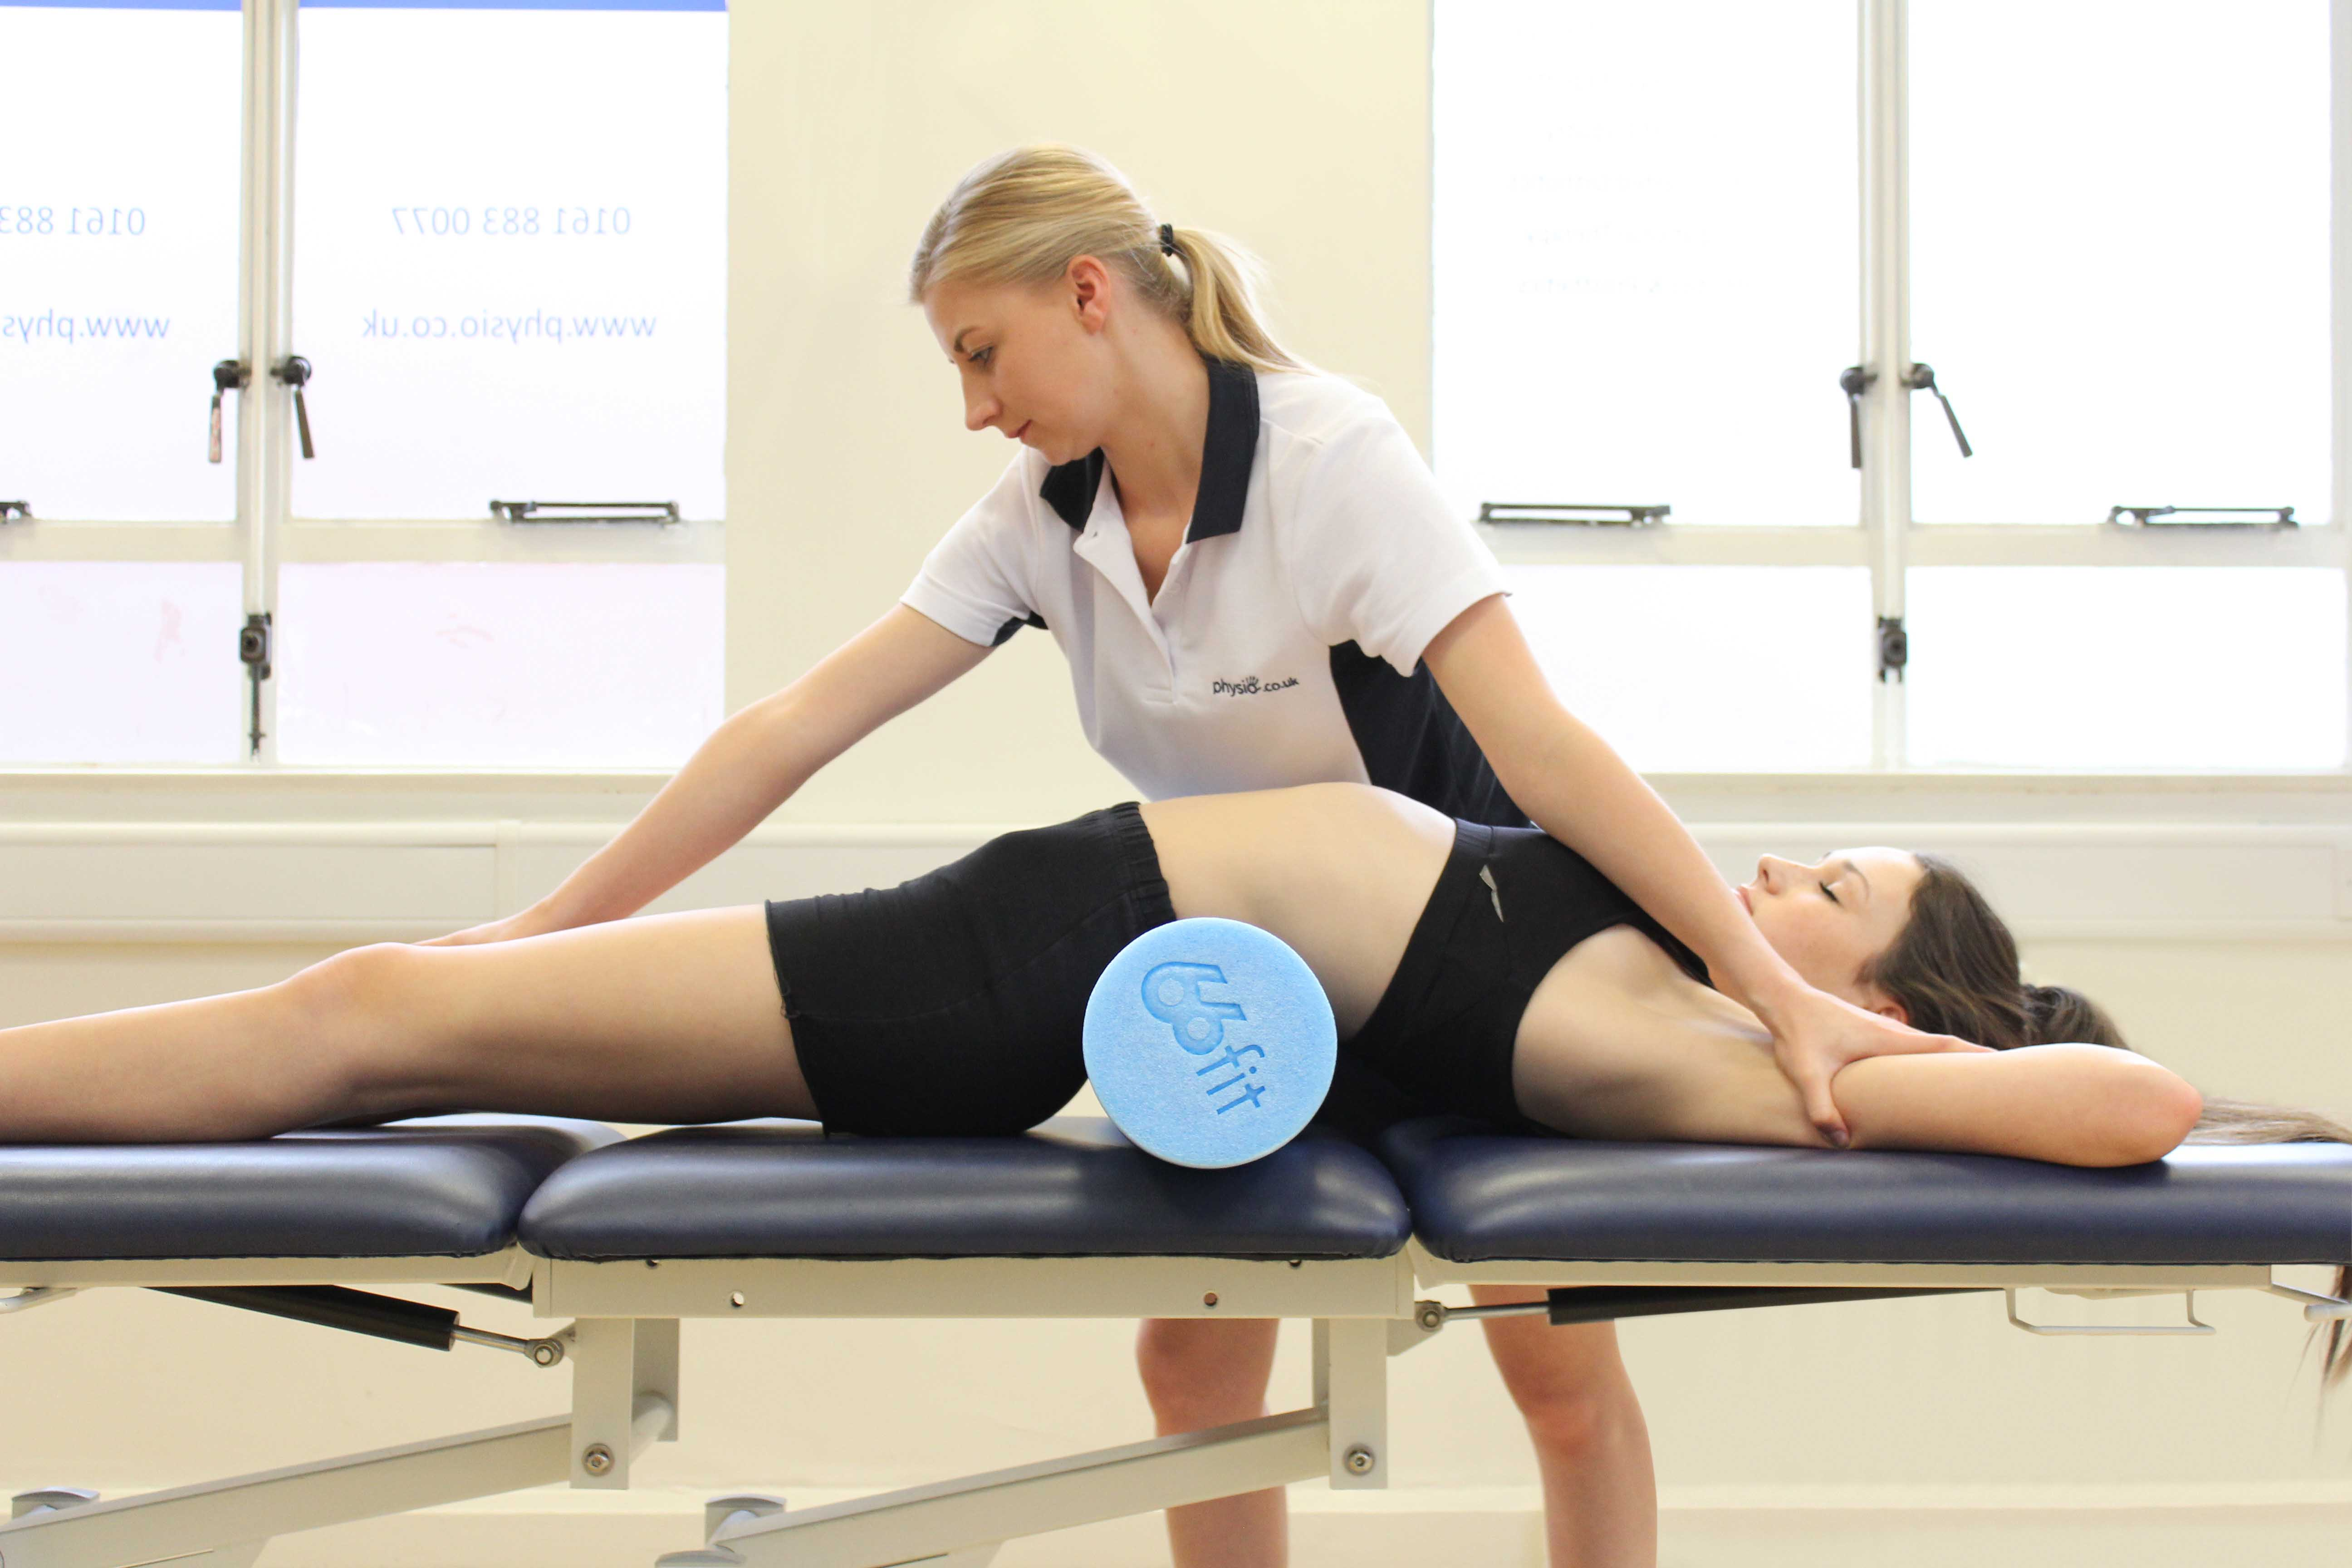 Soft tissue massage of the abdominal muscles by an experienced therapist